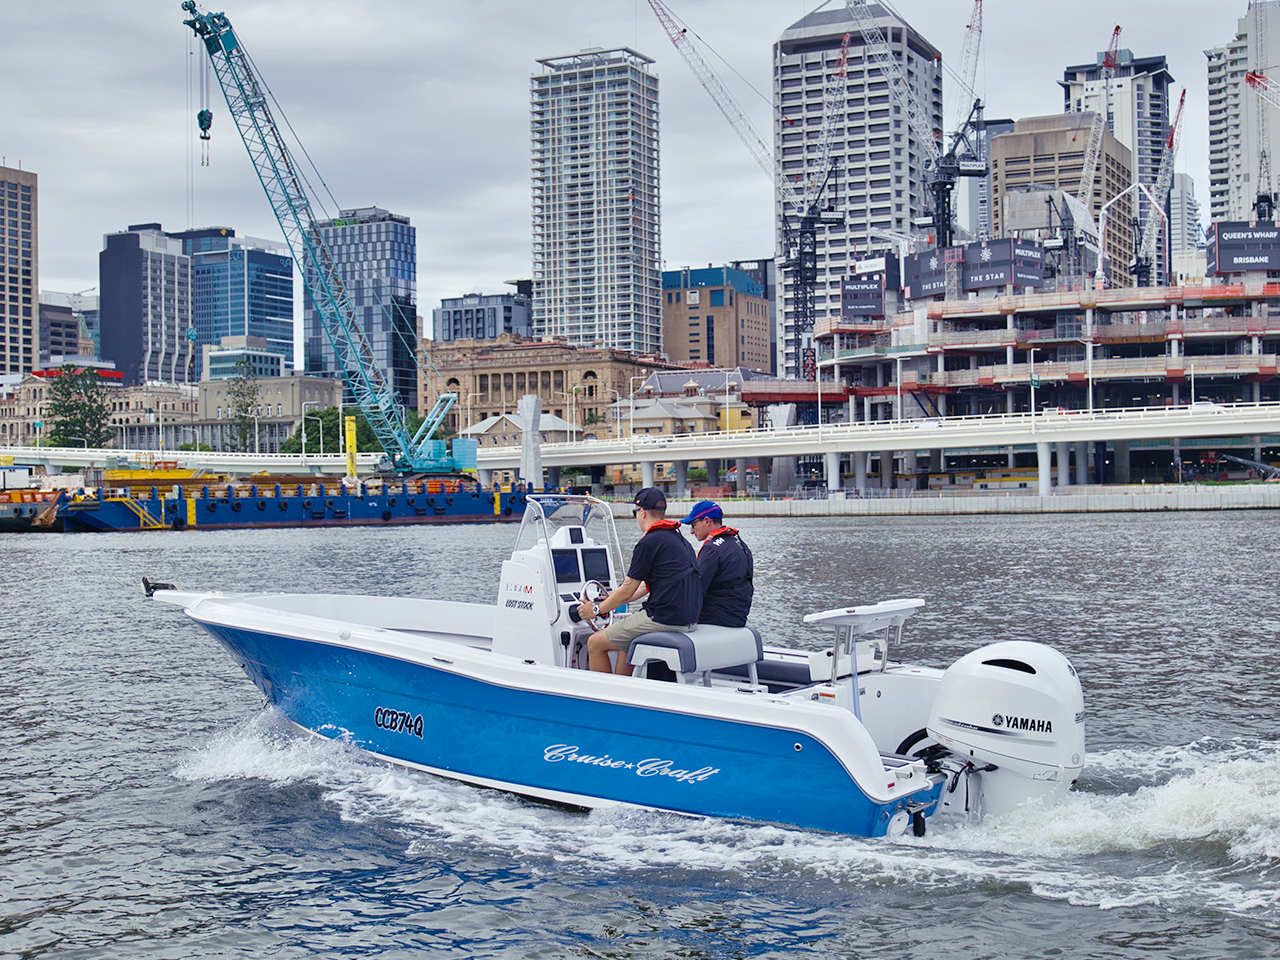 vessel cruising with Yamaha outboard